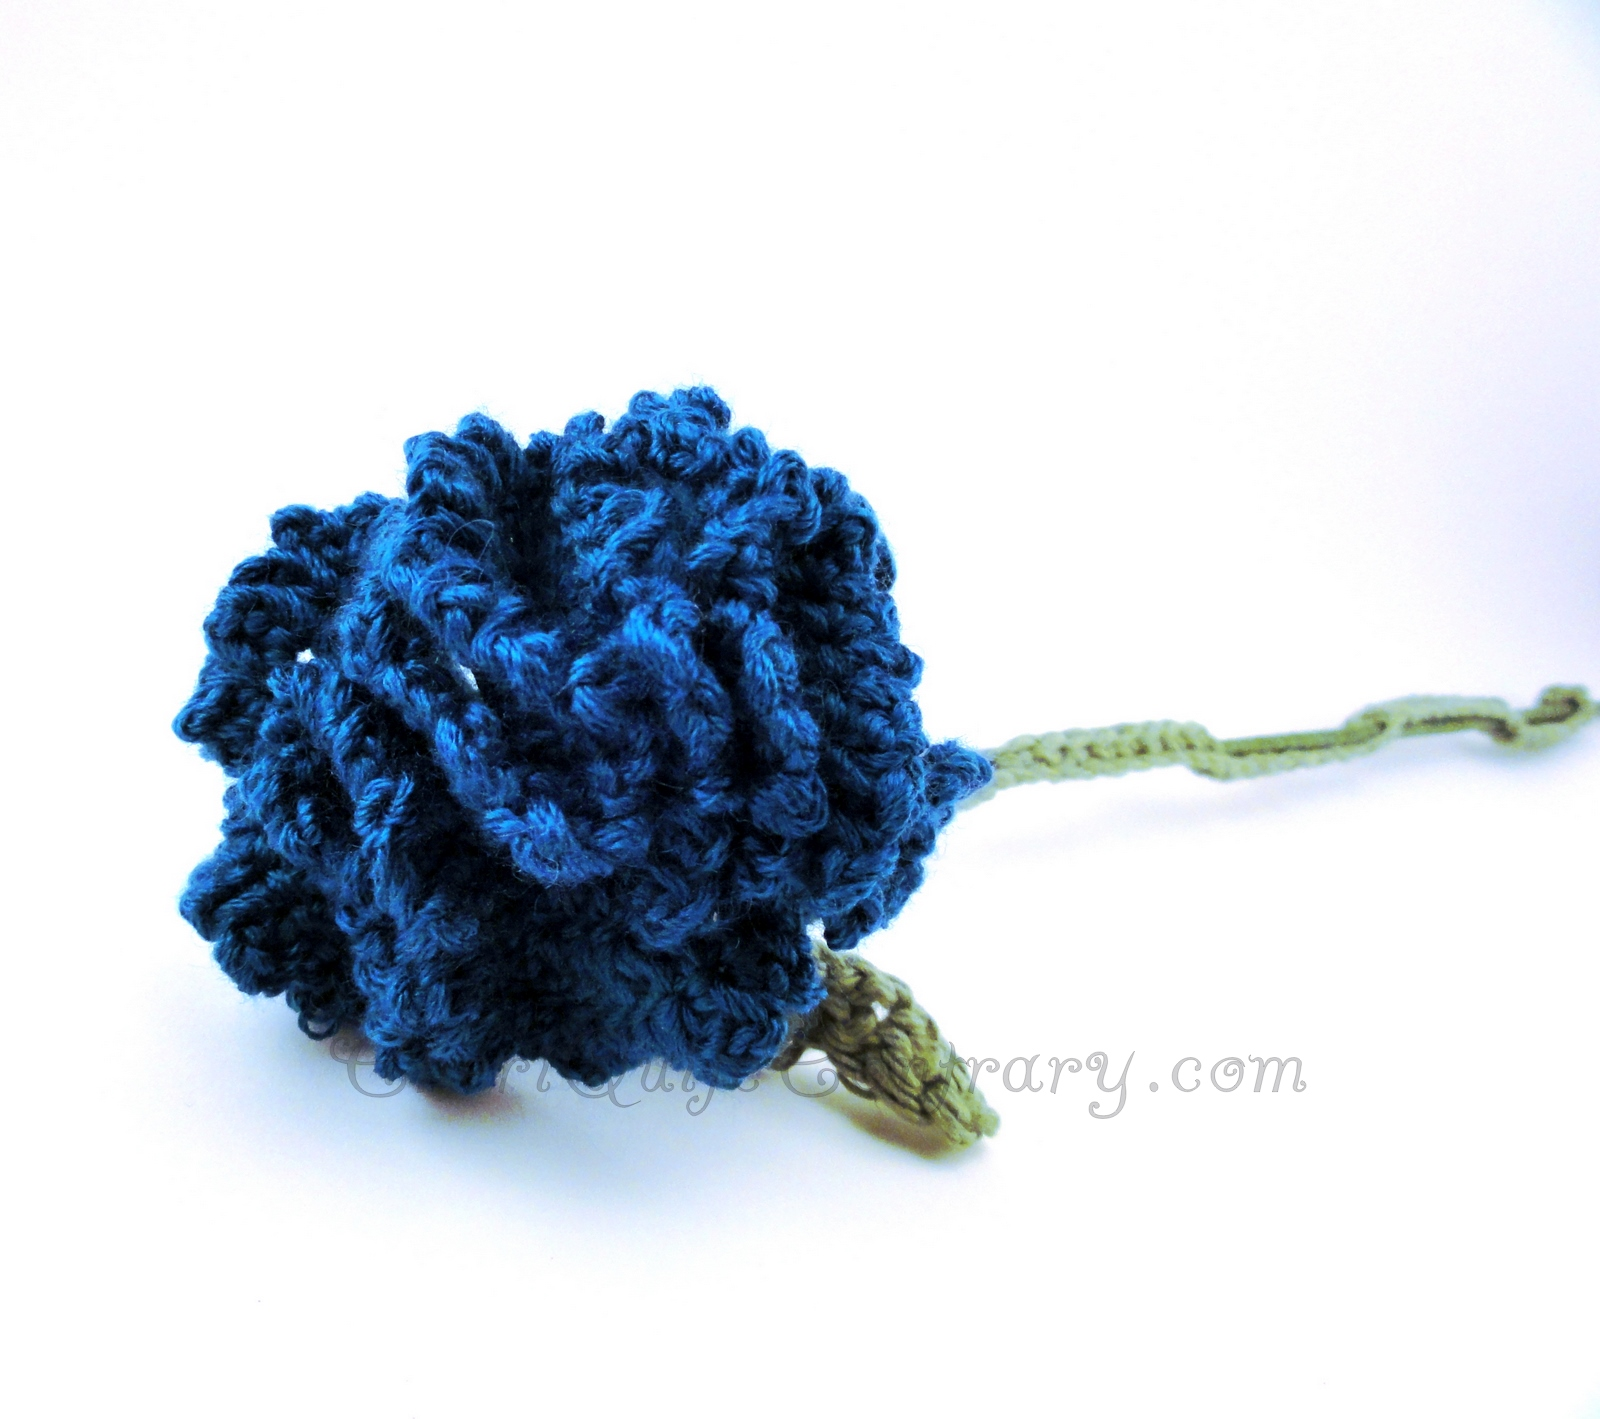 Cheri Quite Contrary: Crochet Carnation